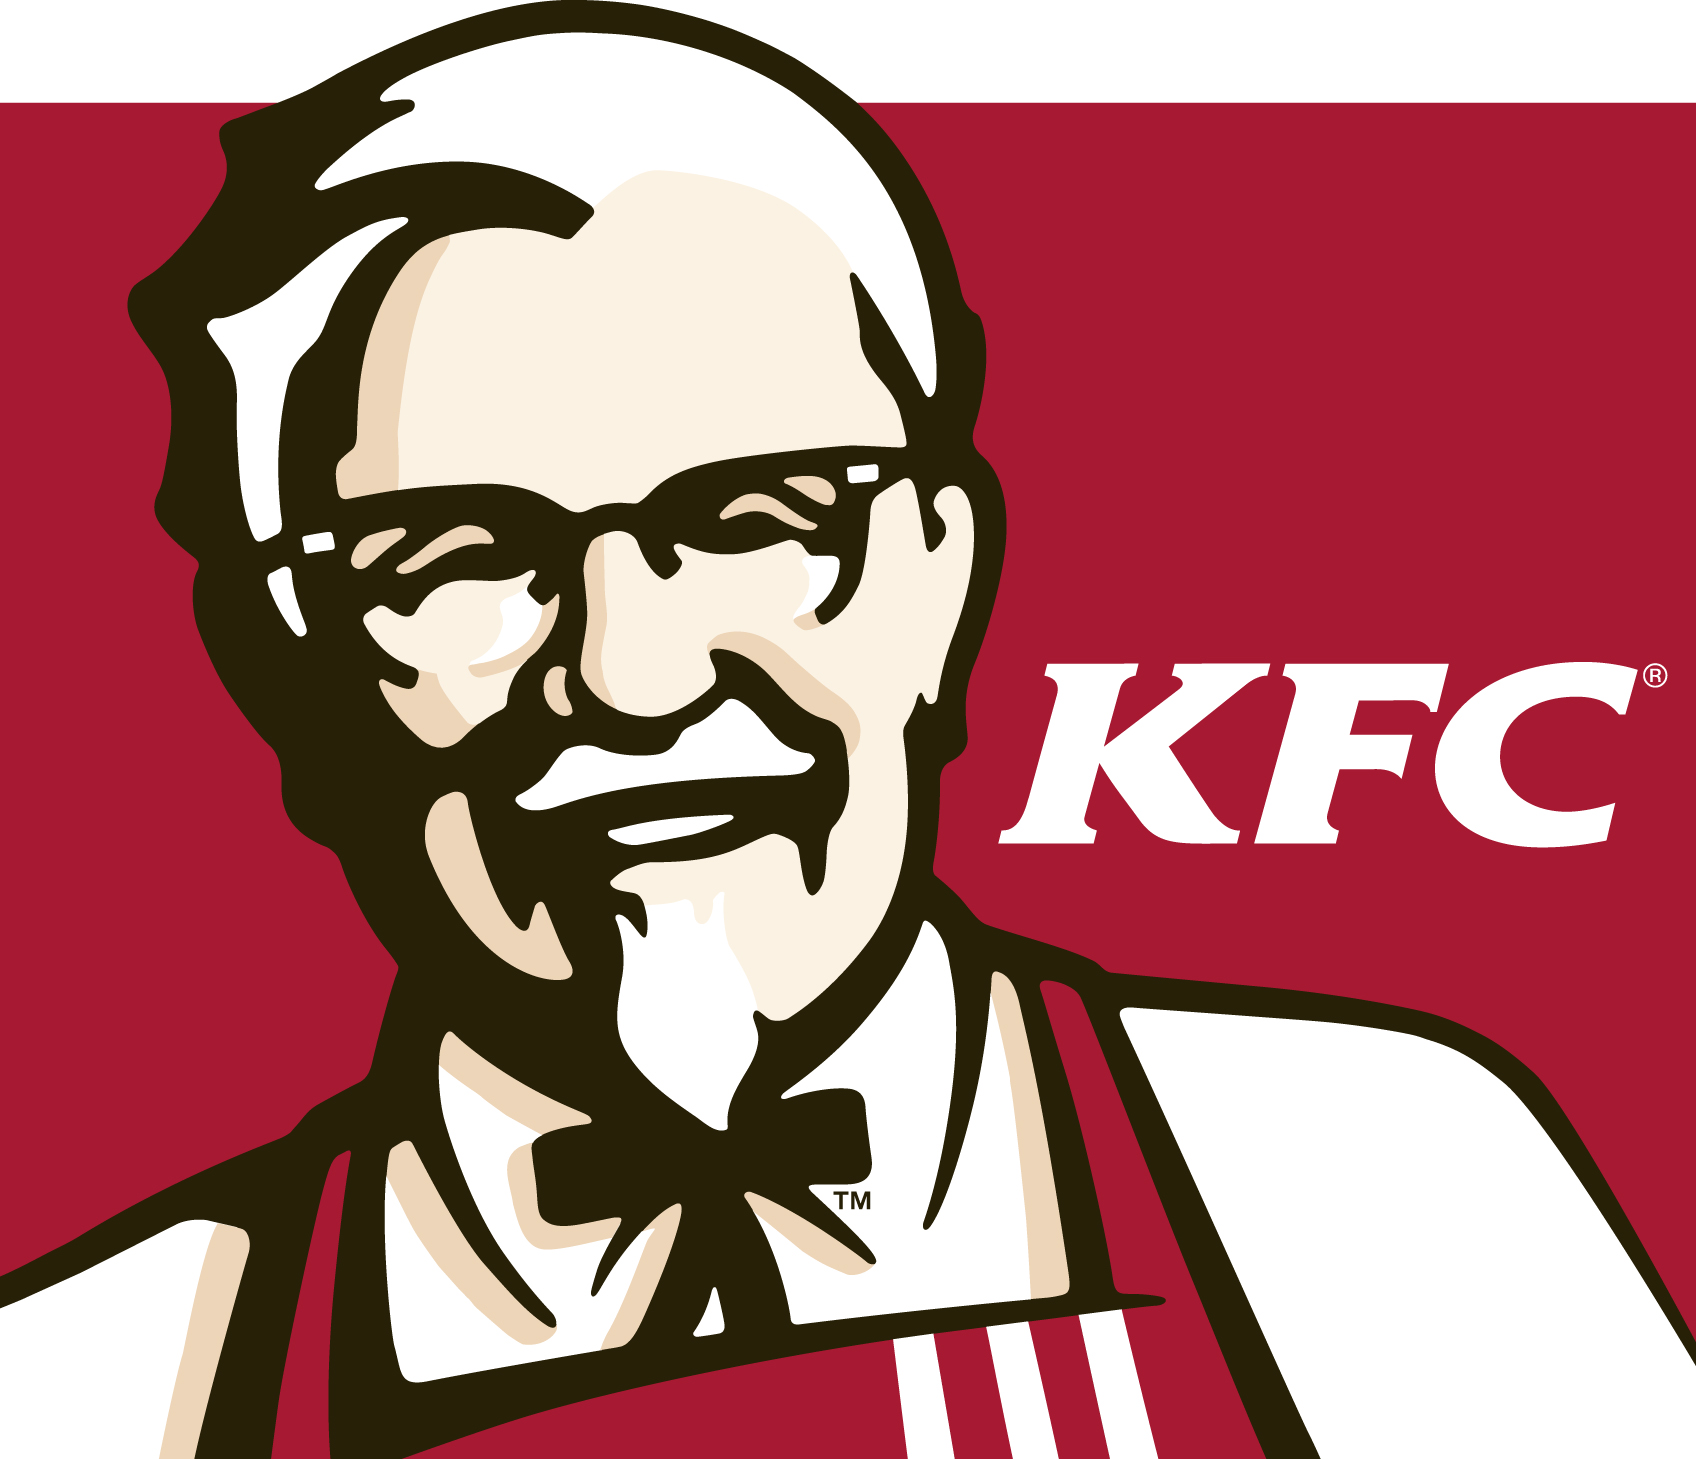 Free KFC Bucket Cliparts, Download Free Clip Art, Free Clip Art on.